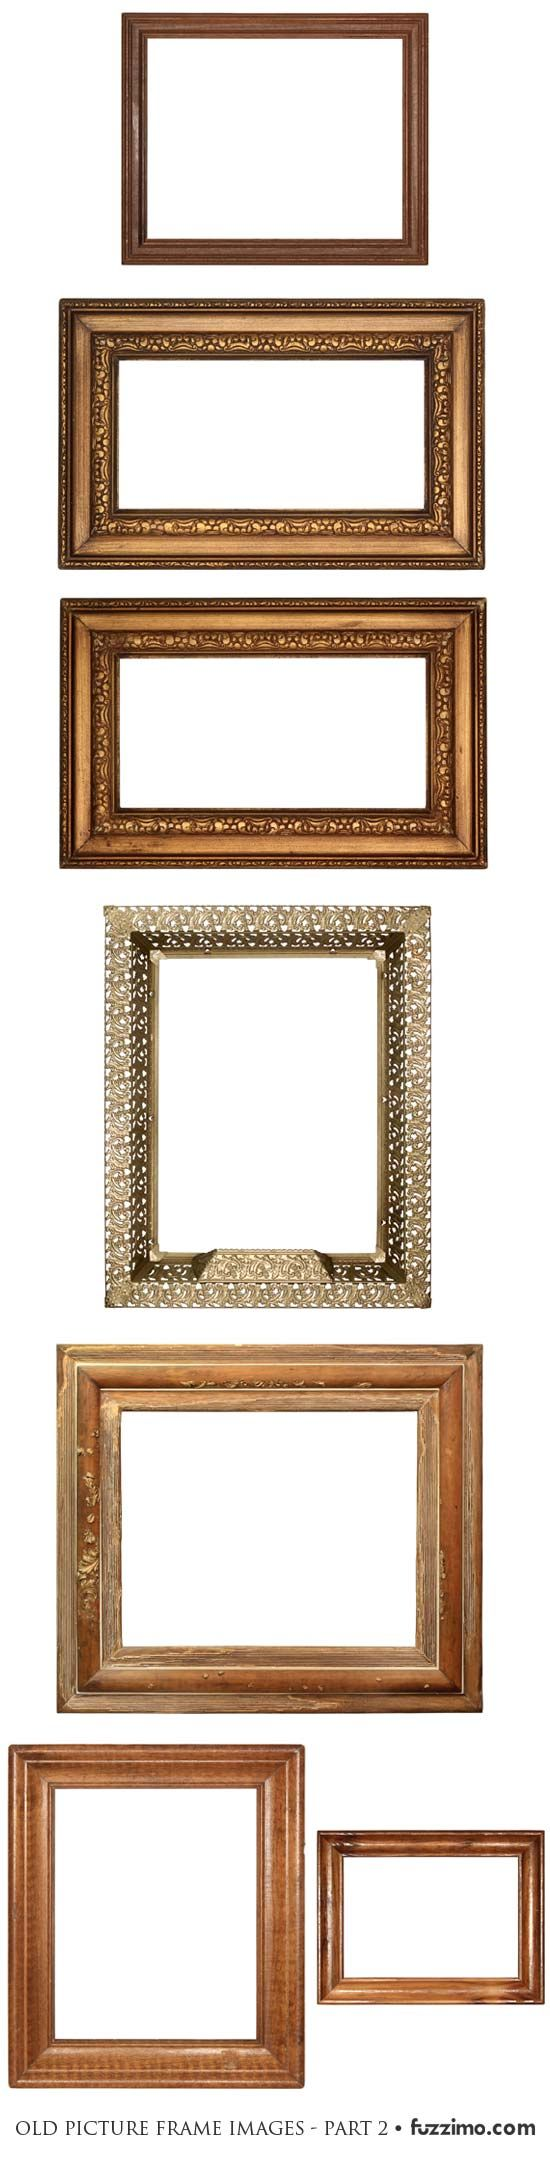 Free Hi-Res Old Picture Frame Images part 2